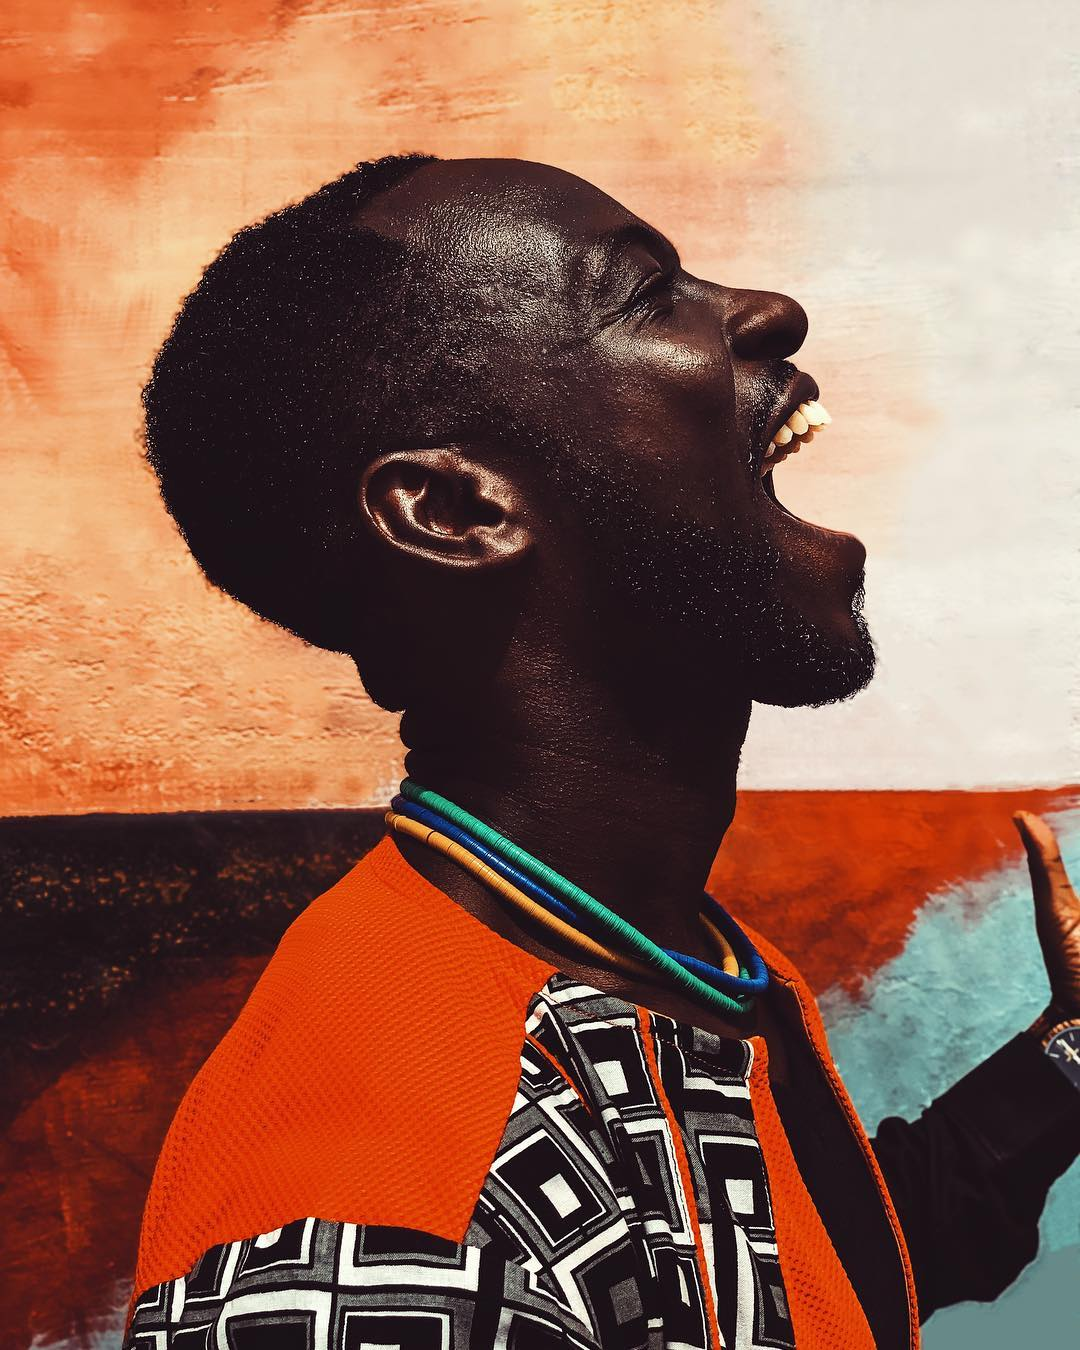 Ghanaian Photographer Prince Gyasi commissioned by Apple to shoot a series of photographs featuring hiplife artists to commemorate MLK Day - 03.jpg